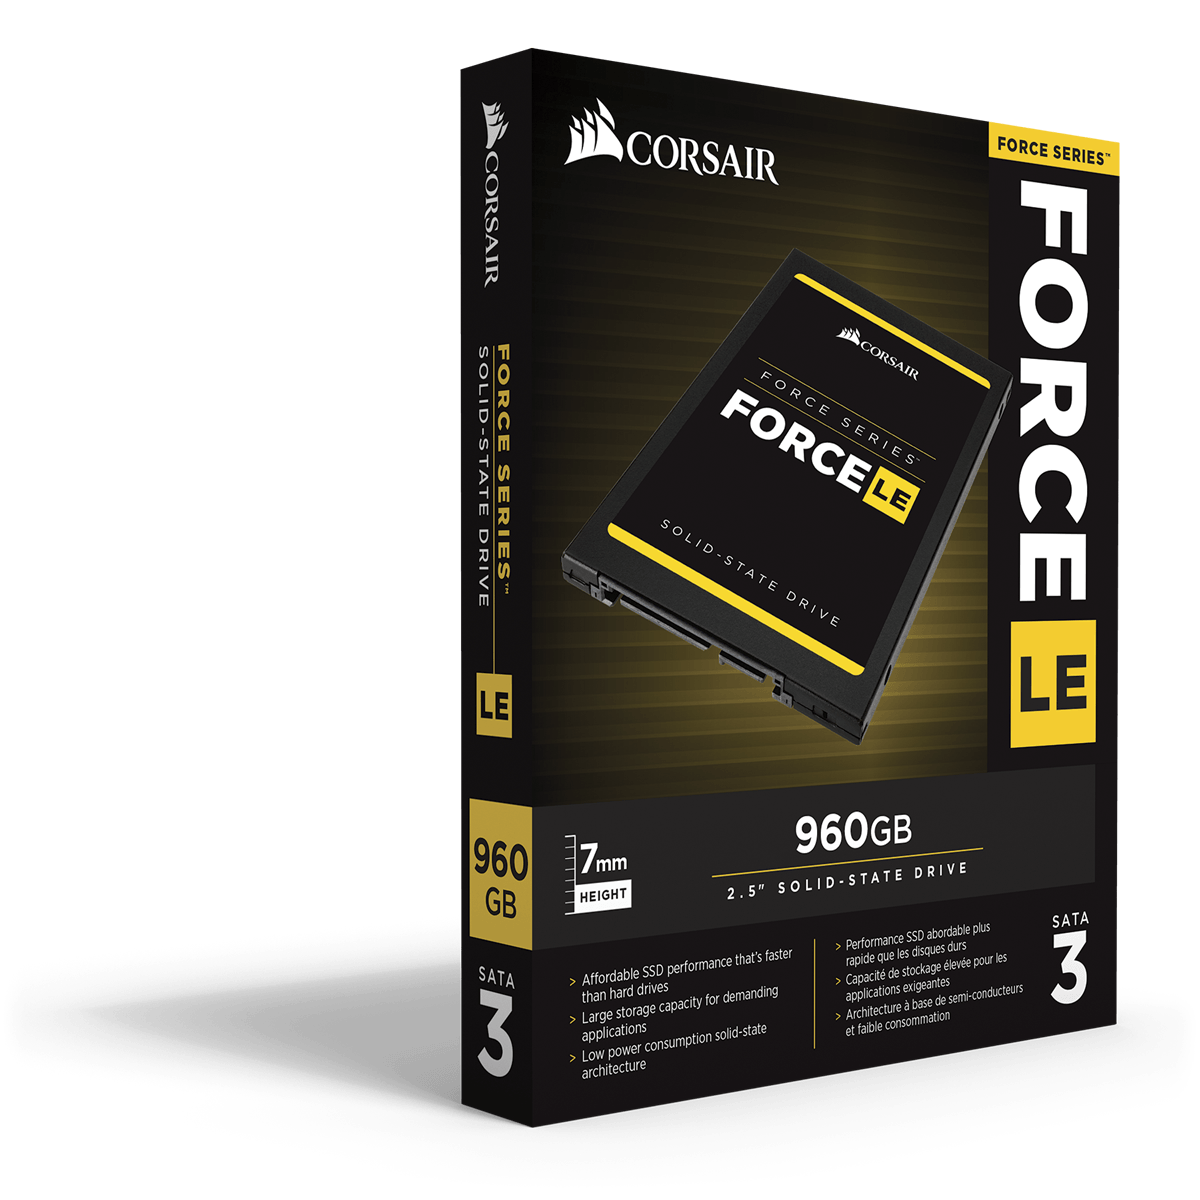 Corsair Force Series LE 960GB SATA 3 6Gb / S SSD